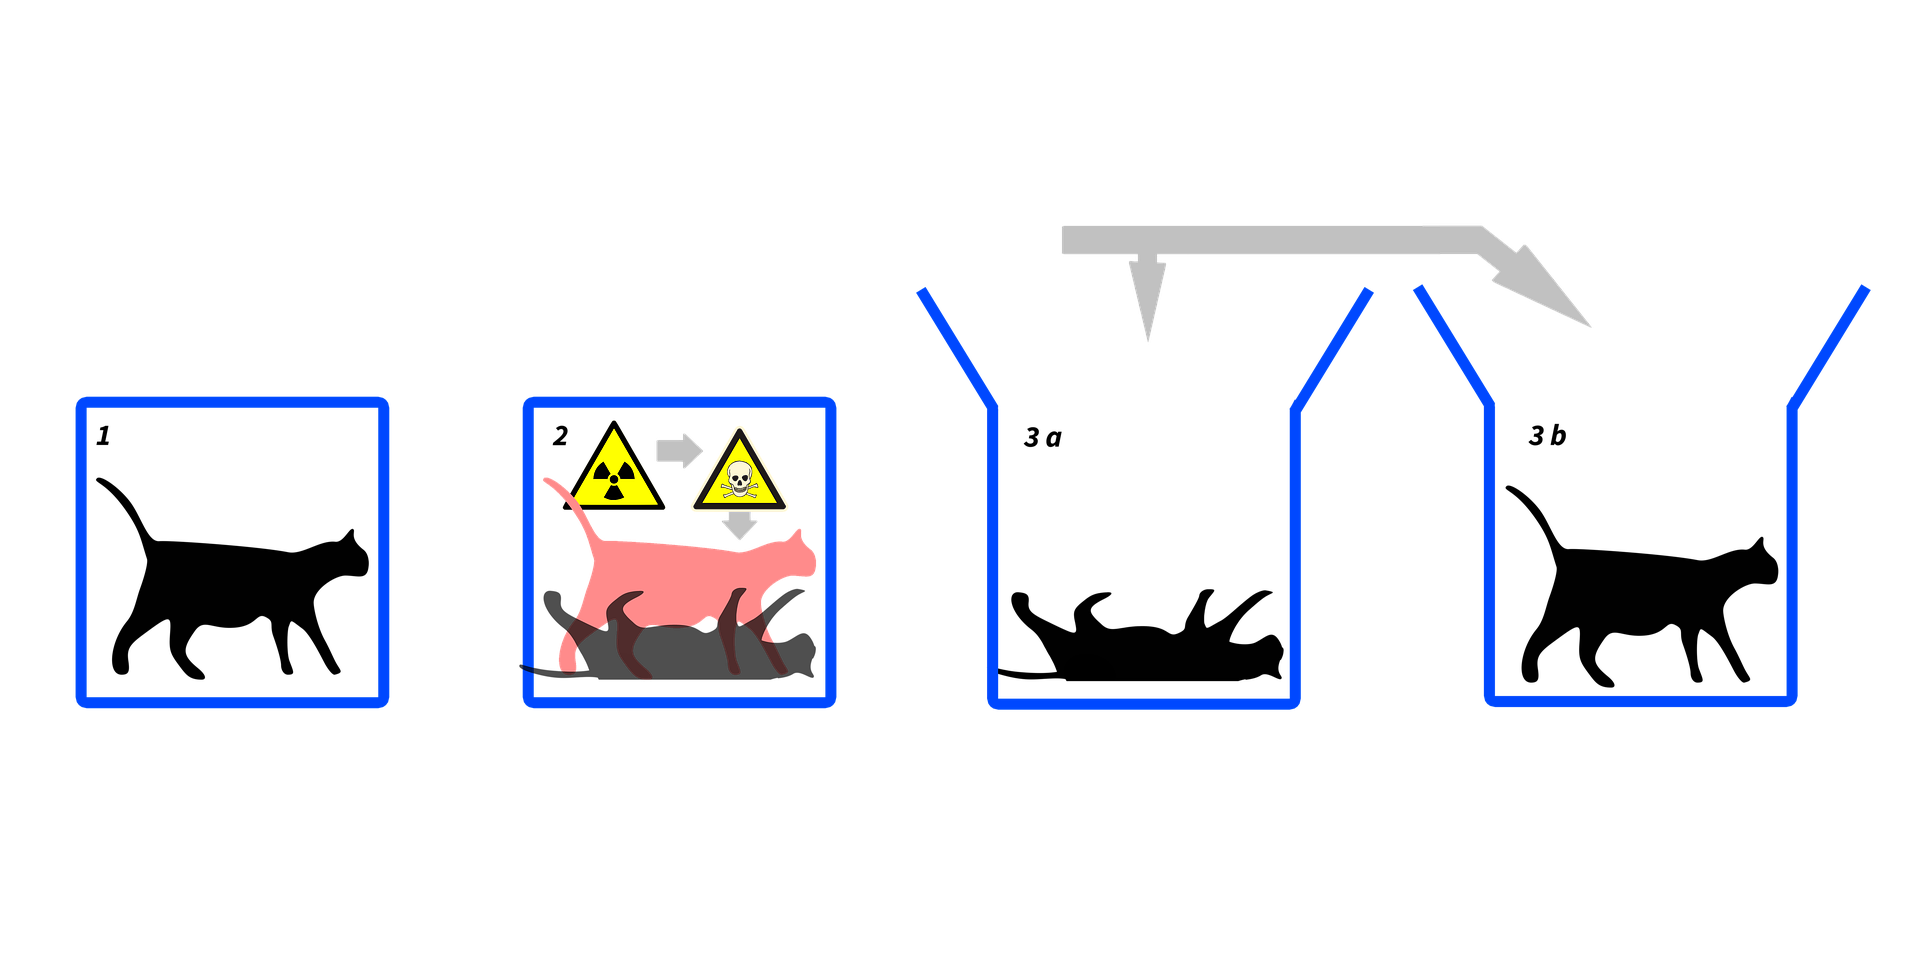 A simple diagram of the Schrödingers Cat experiment. There are four blue boxes, with either living or dead cats inside.